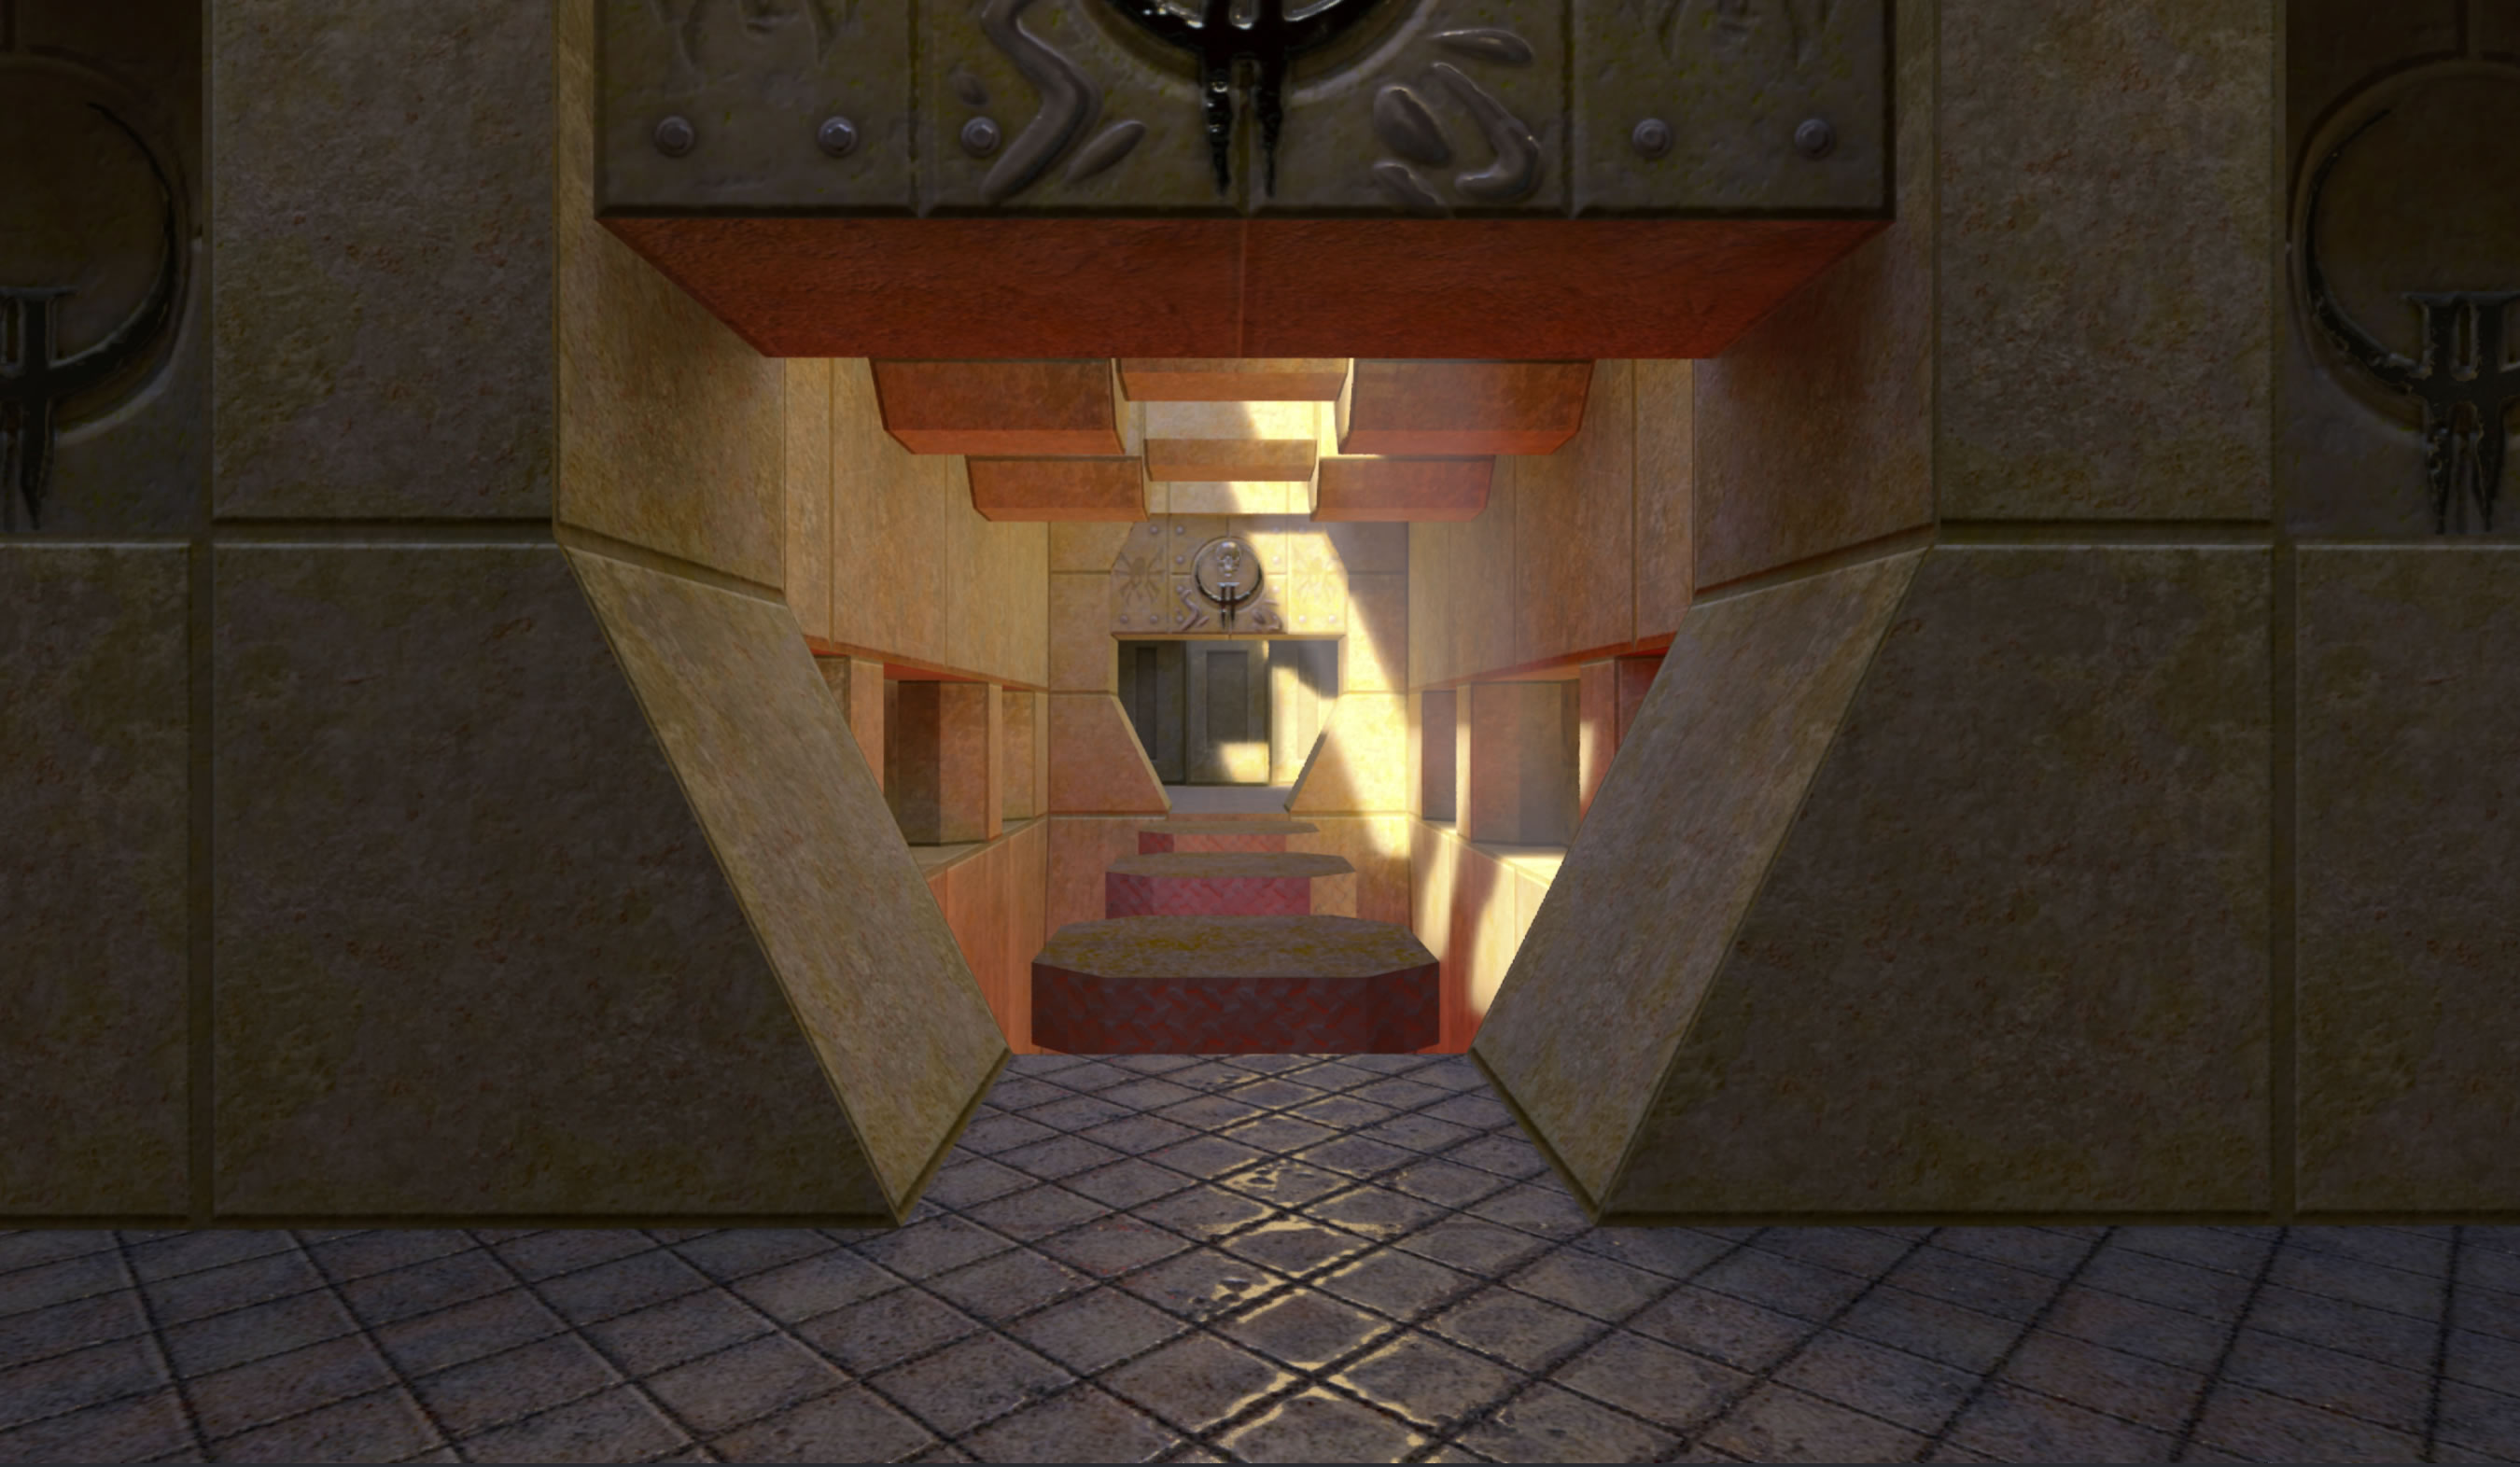 Quake II has received an RTX makeover, now available to